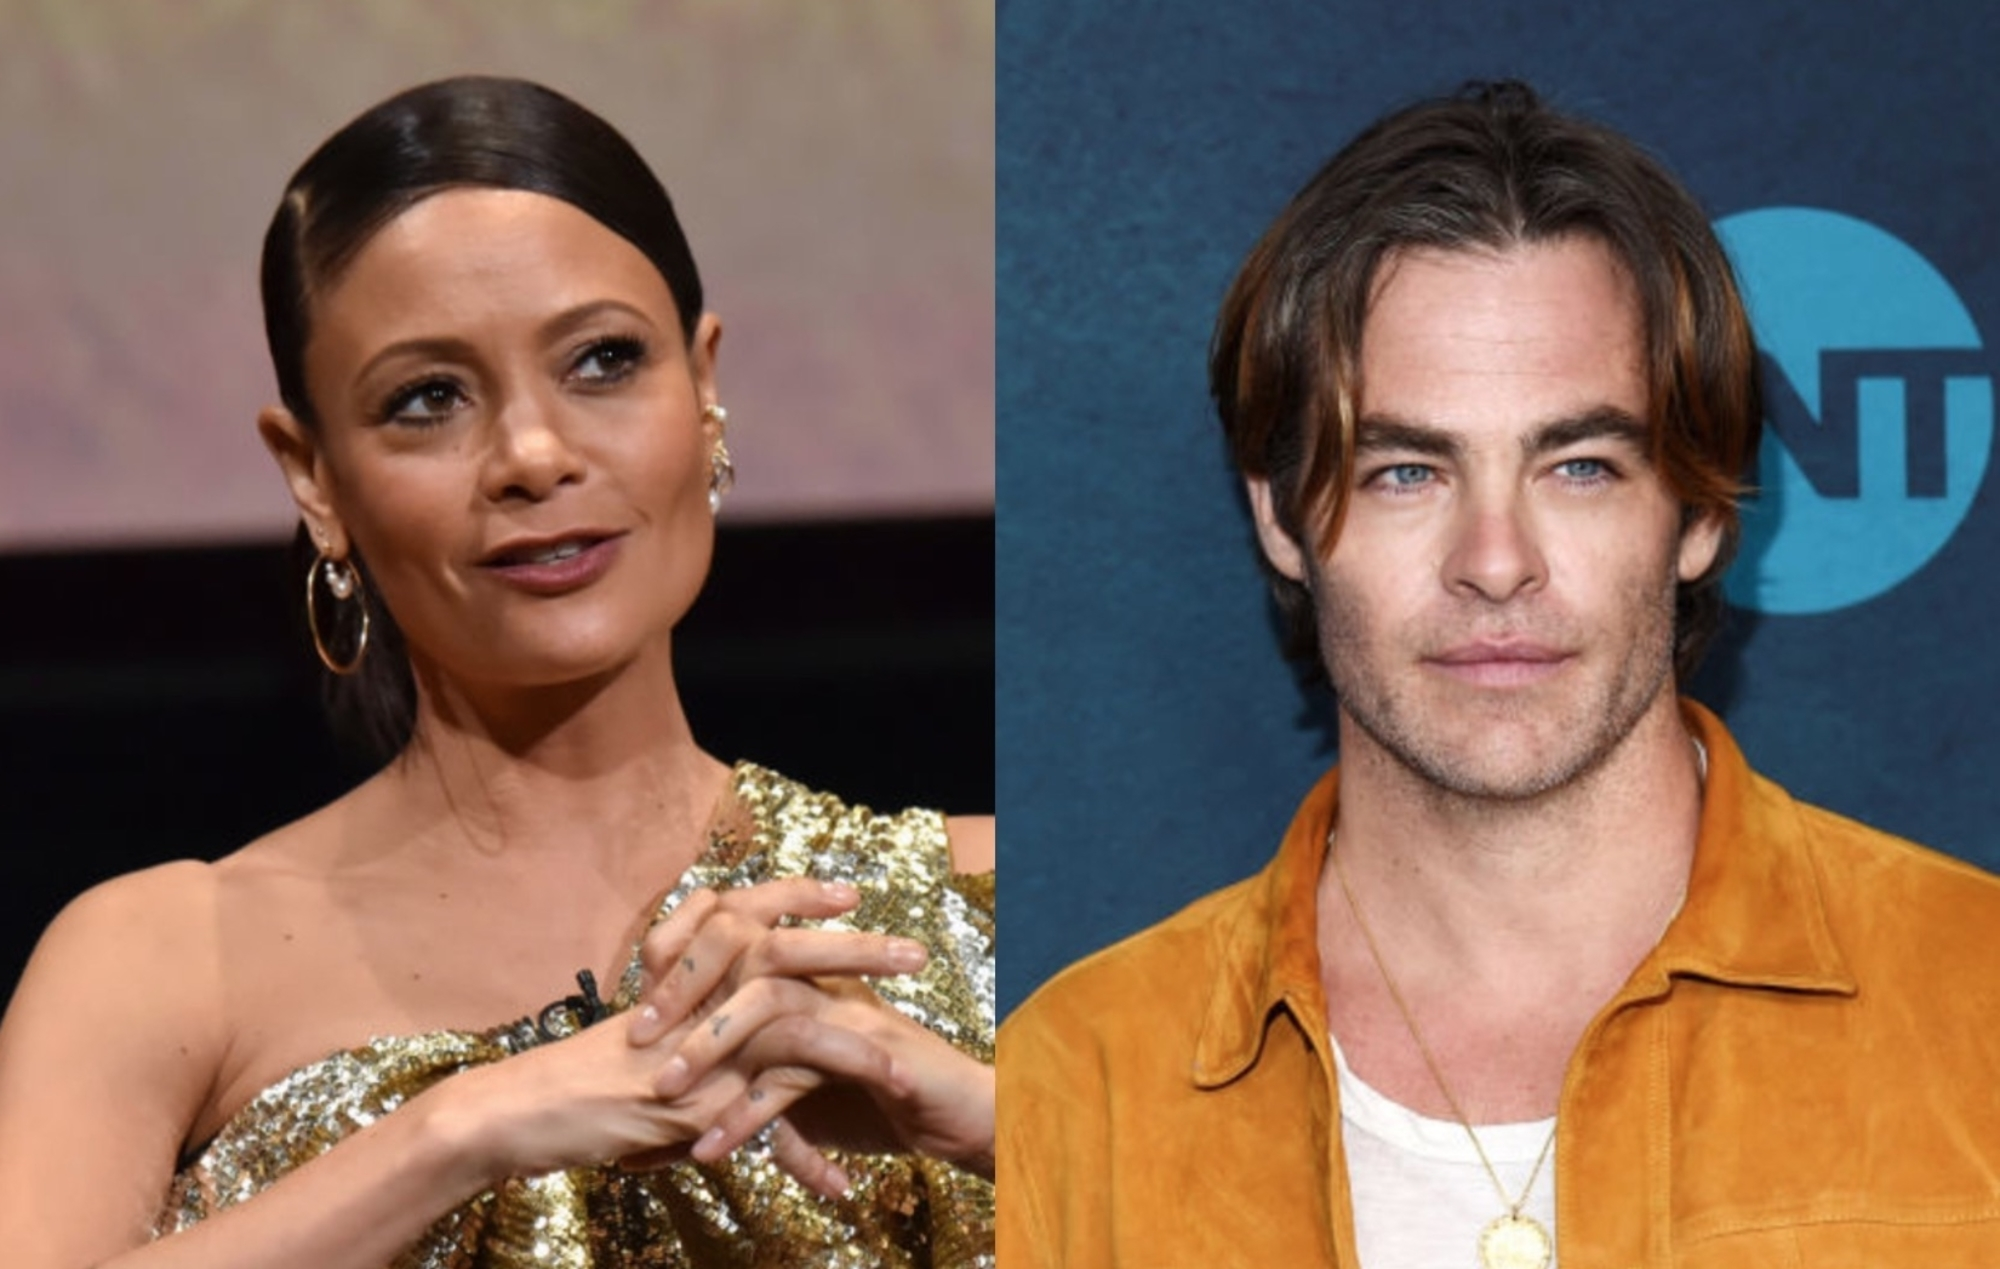 Thandie Newton joins Chris Pine in new film 'All The Old Knives'